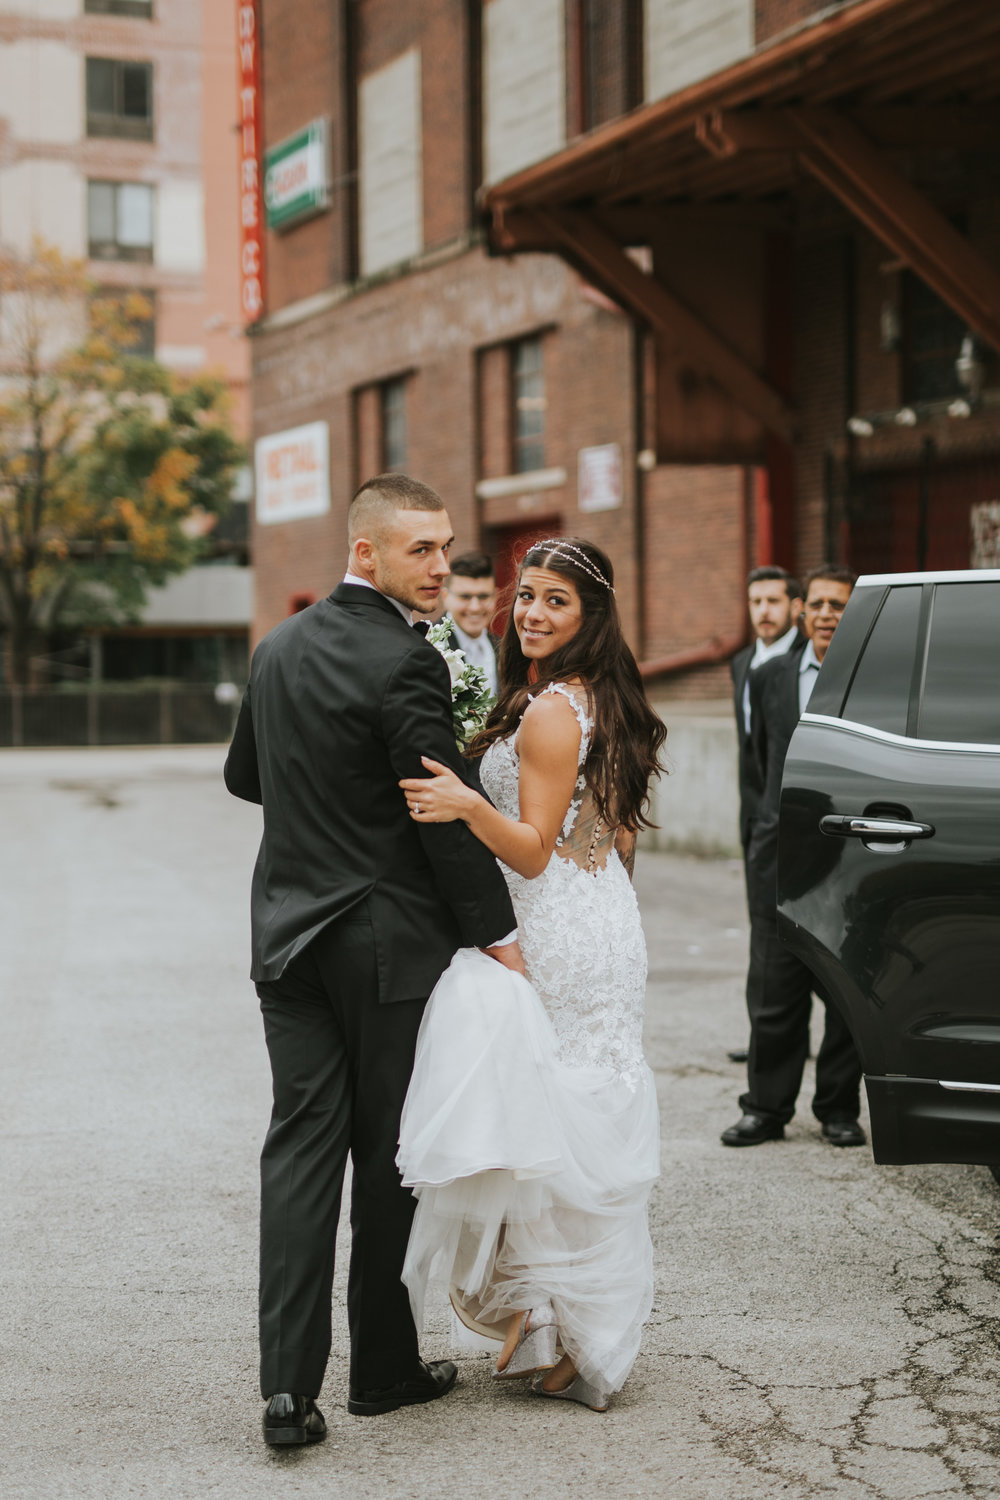 City View Loft Chicago Wedding_Polly C Photography 1715145722.jpg